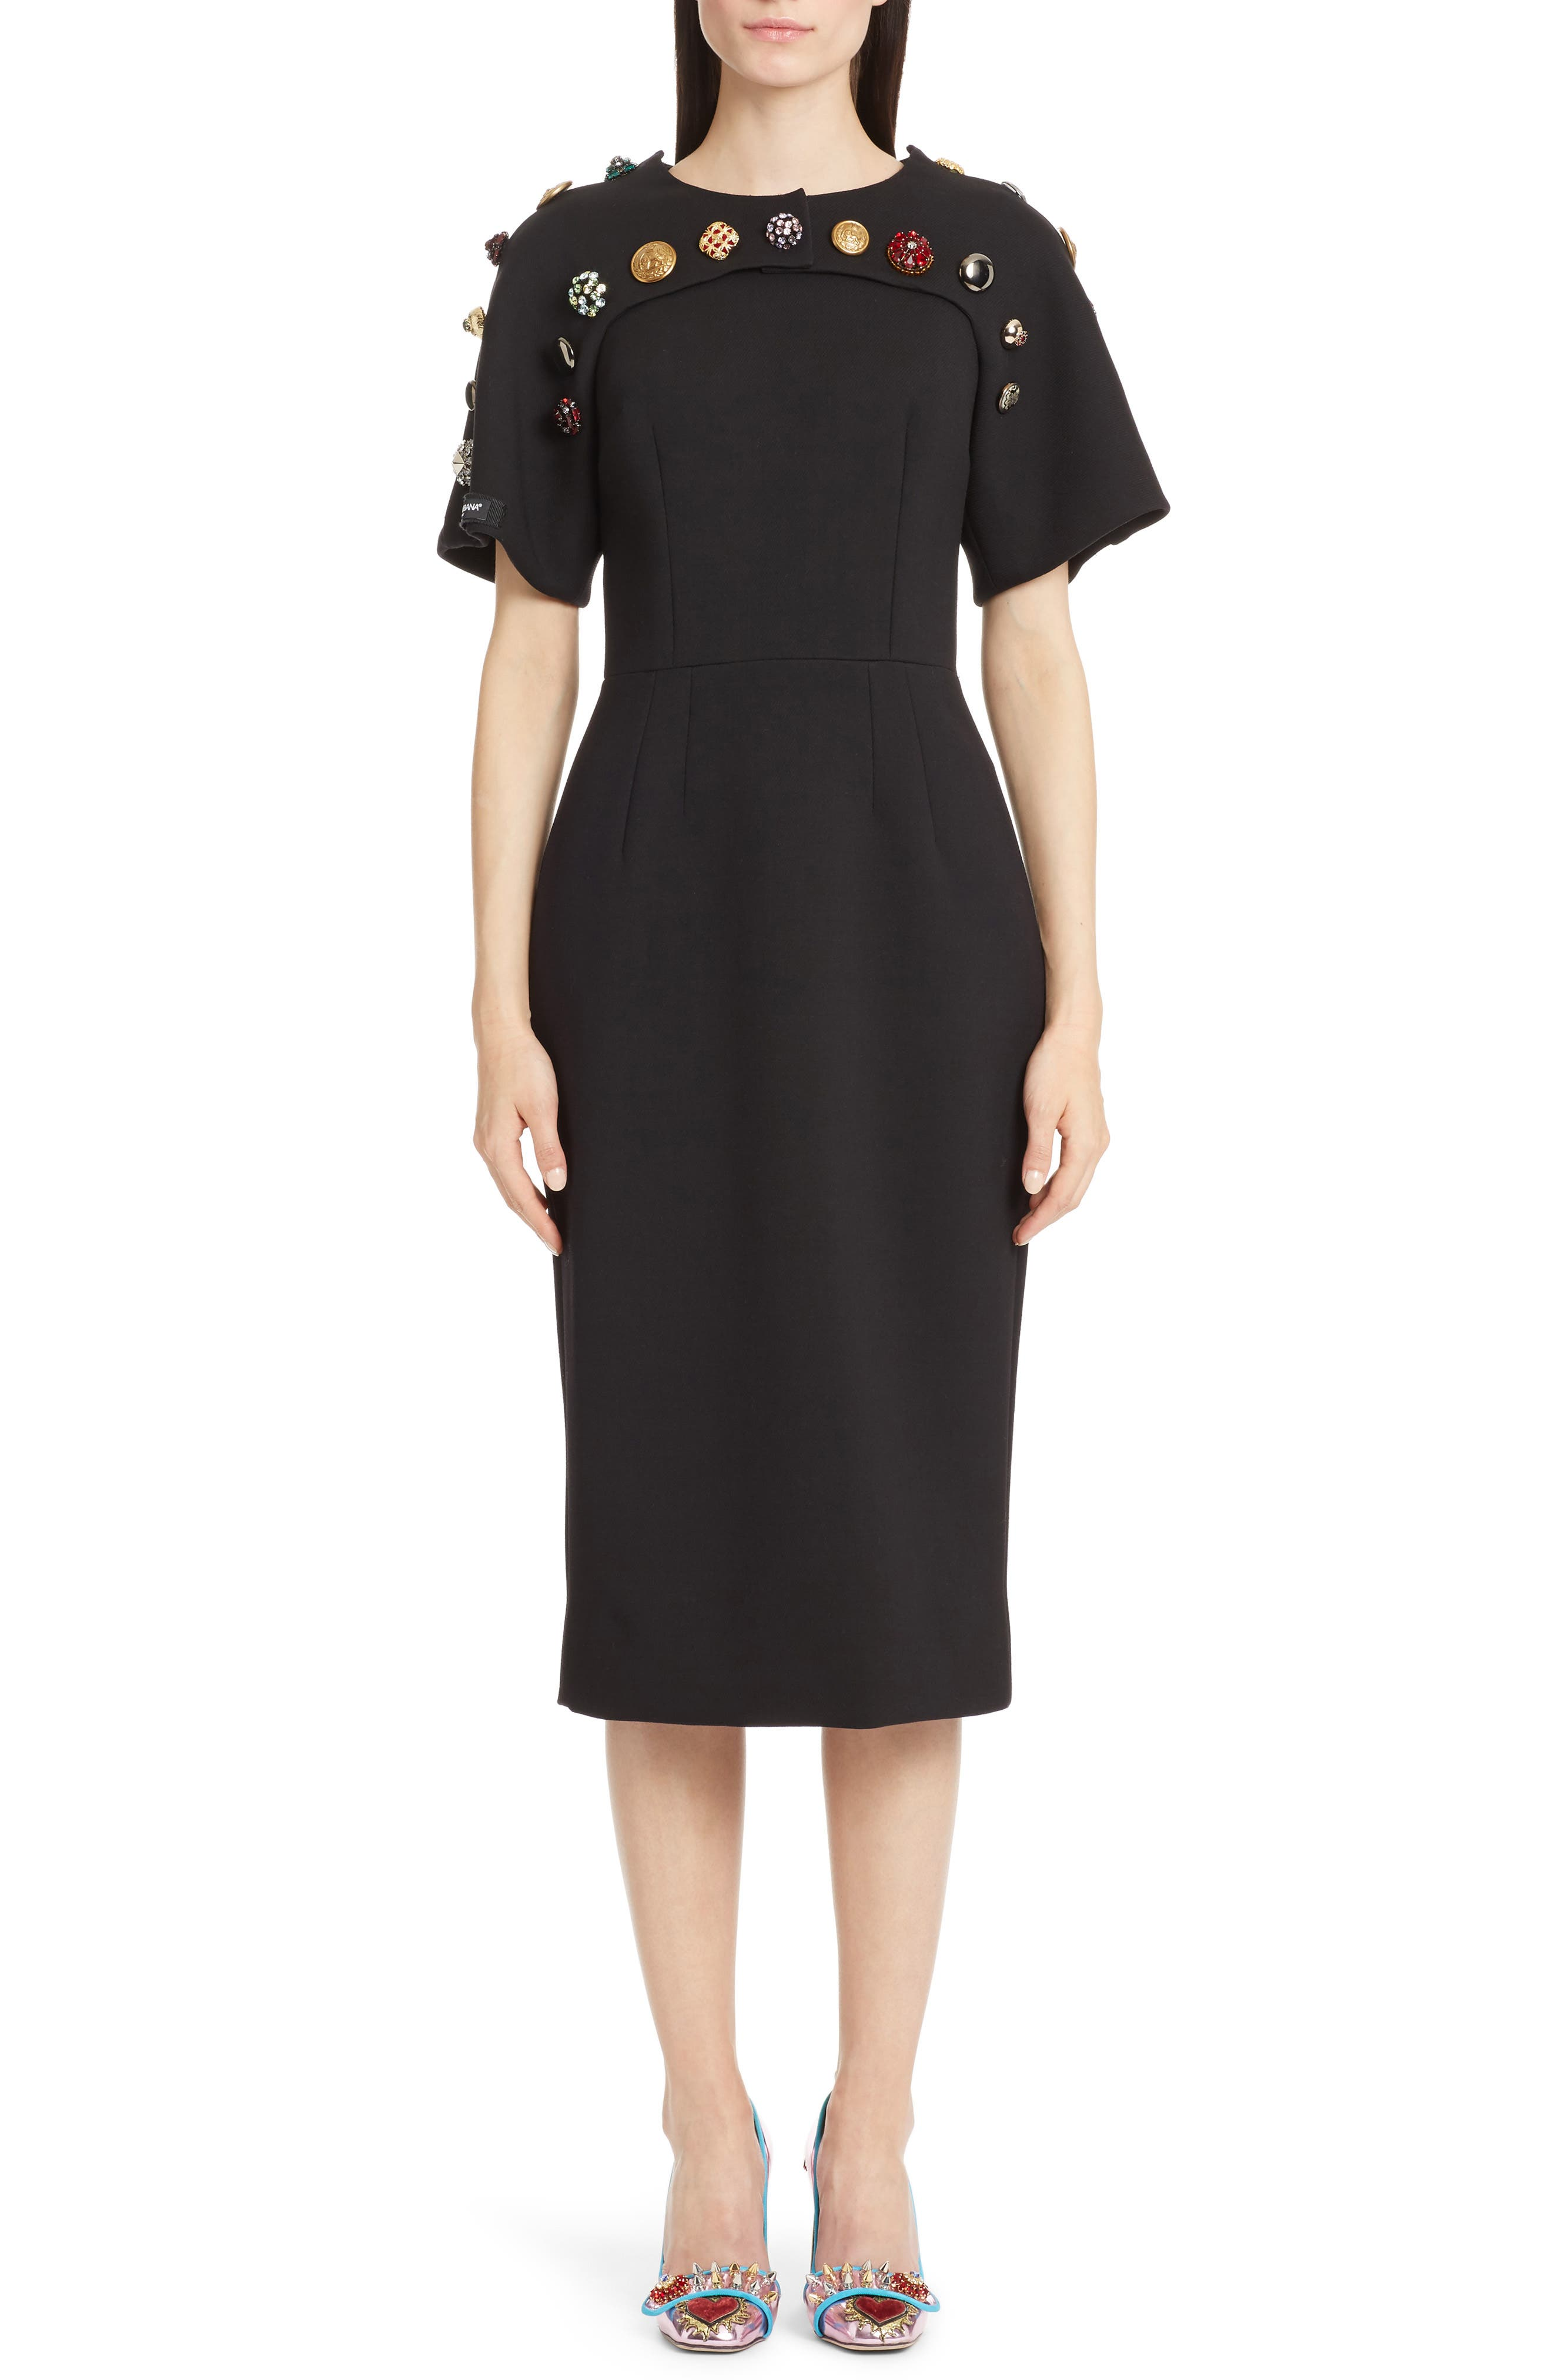 Alternate Image 1 Selected - Dolce&Gabbana Button Trim Stretch Wool Sheath Dress